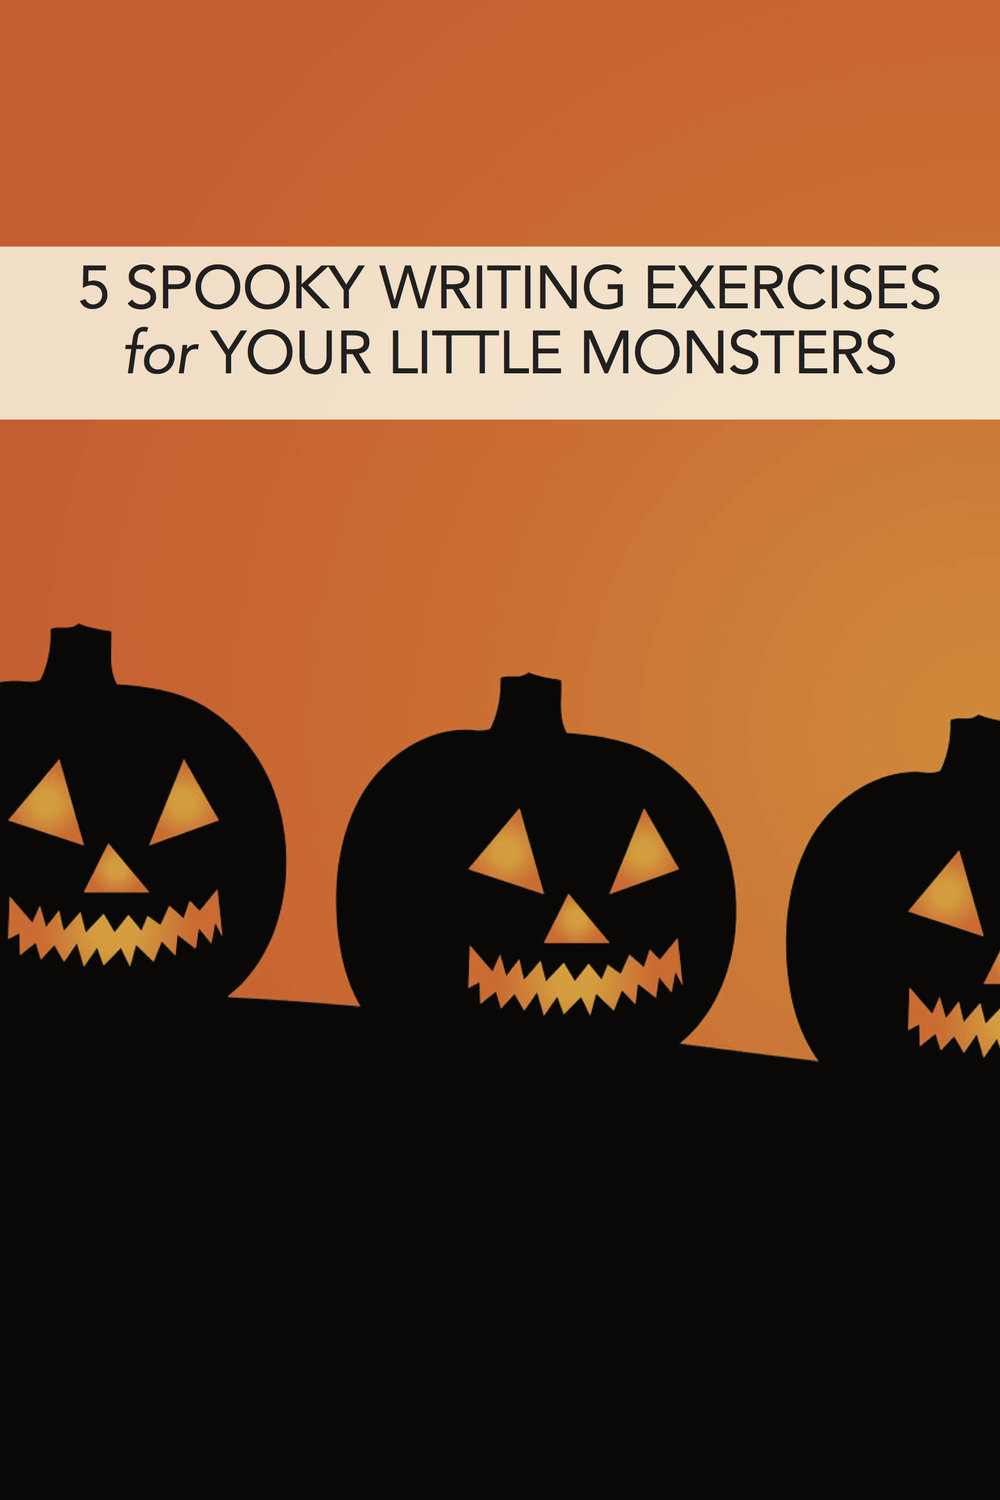 5 Spooky Writing Exercises for Your Little Monsters